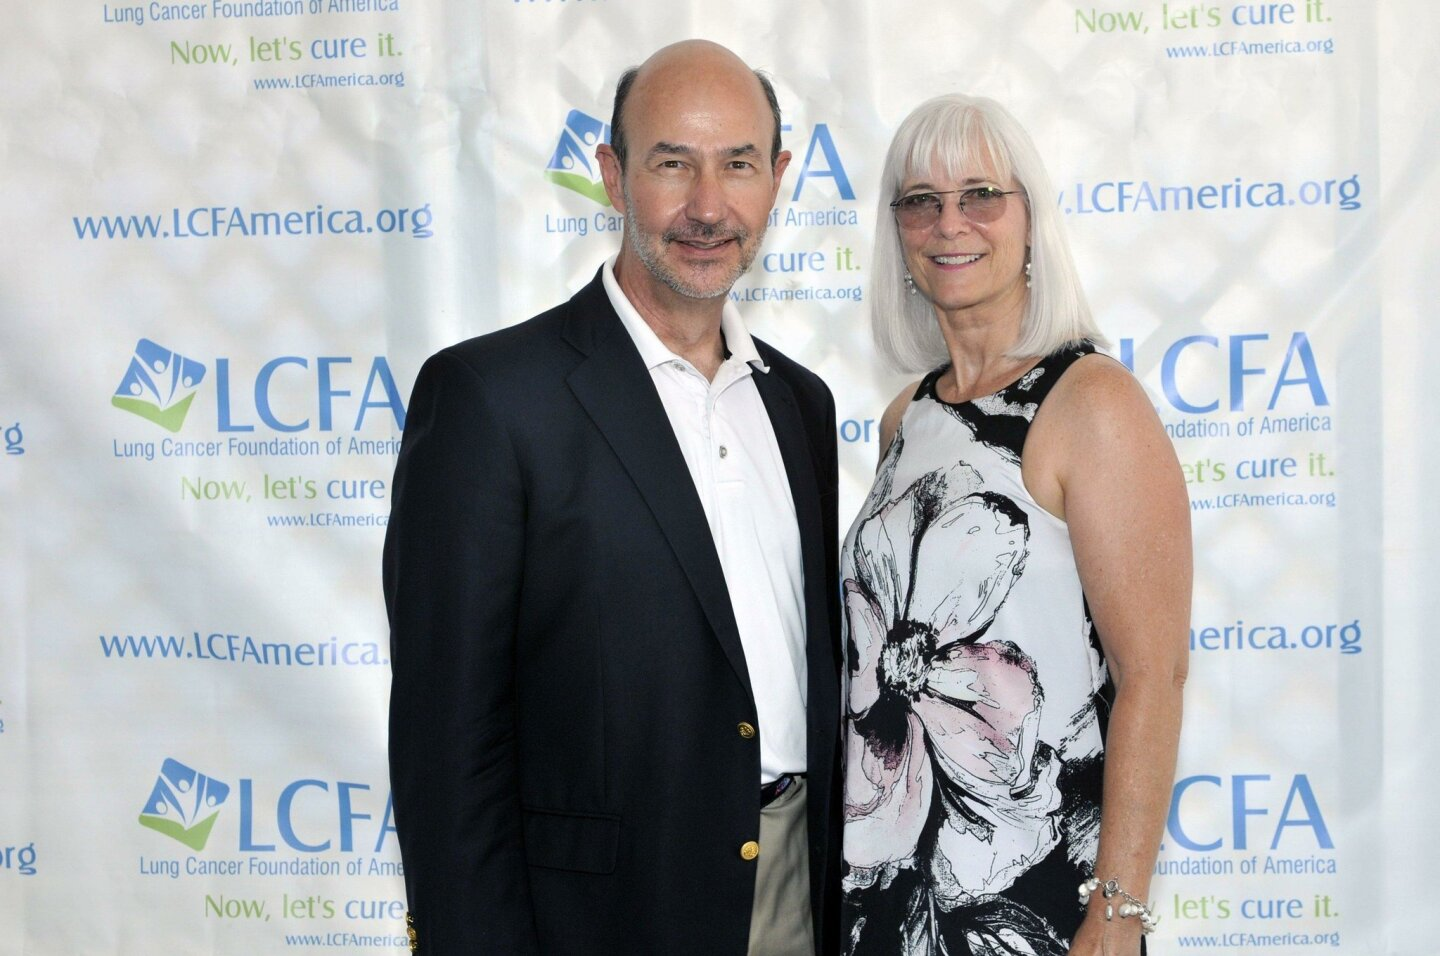 Lung Cancer Foundation of America Executive Director Jim Baranski, President and co-founder Kim Norris